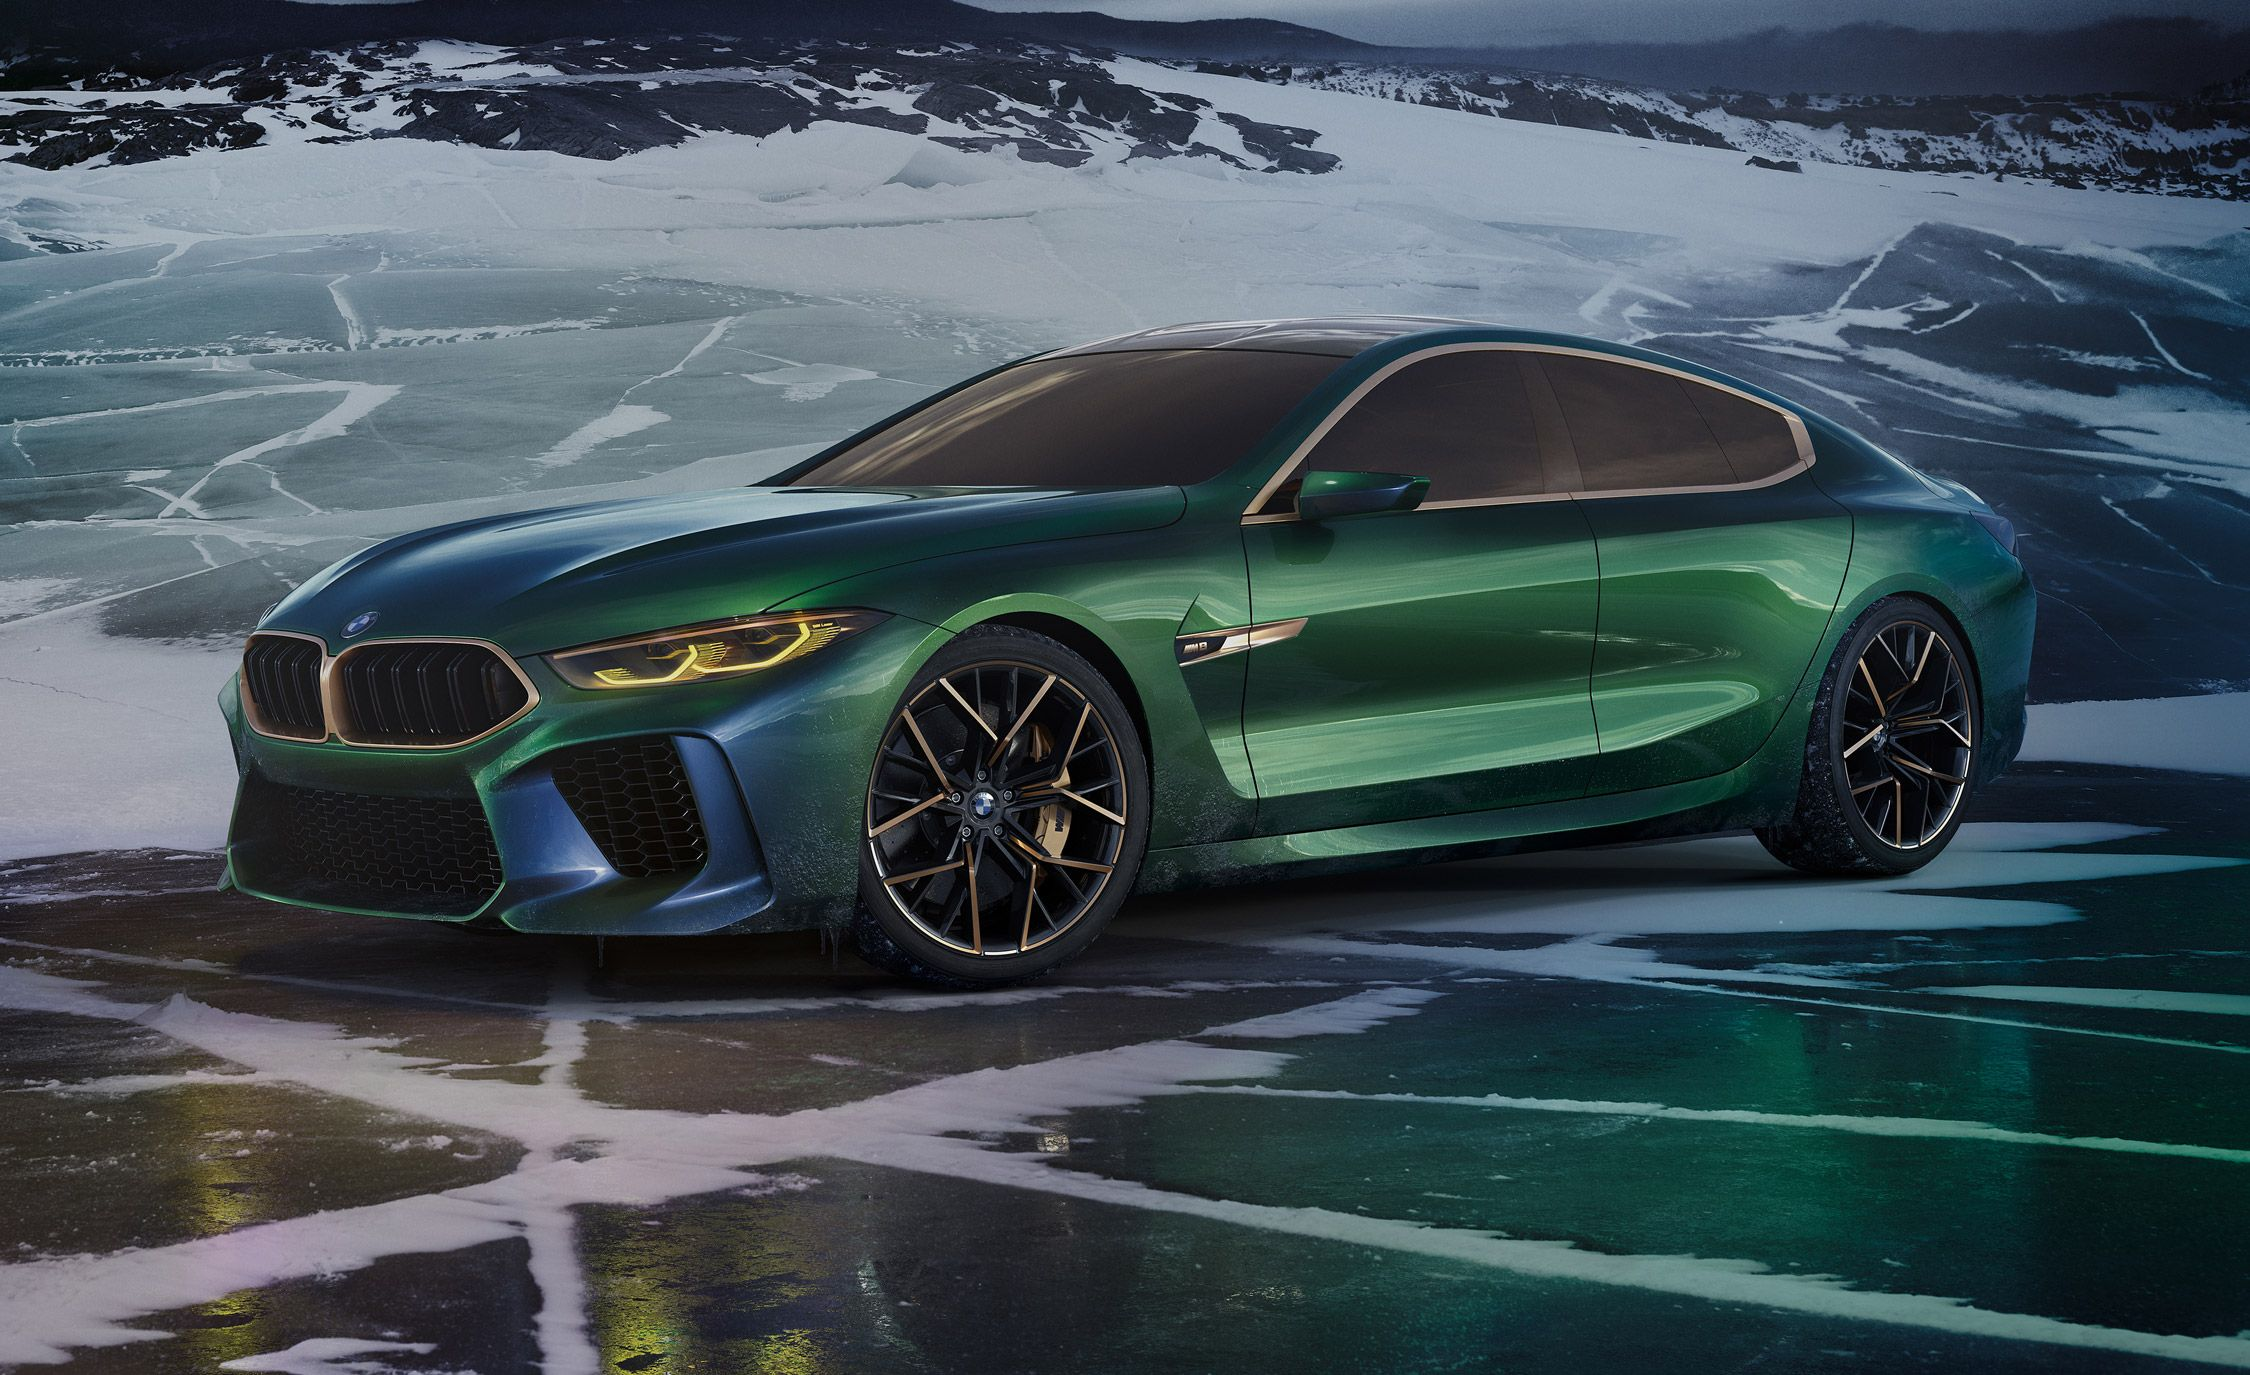 2019 Cadillac Ct8 25 Cars Worth Waiting For: 2019 BMW 8-Series: Is BMW Rediscovering Its Performance